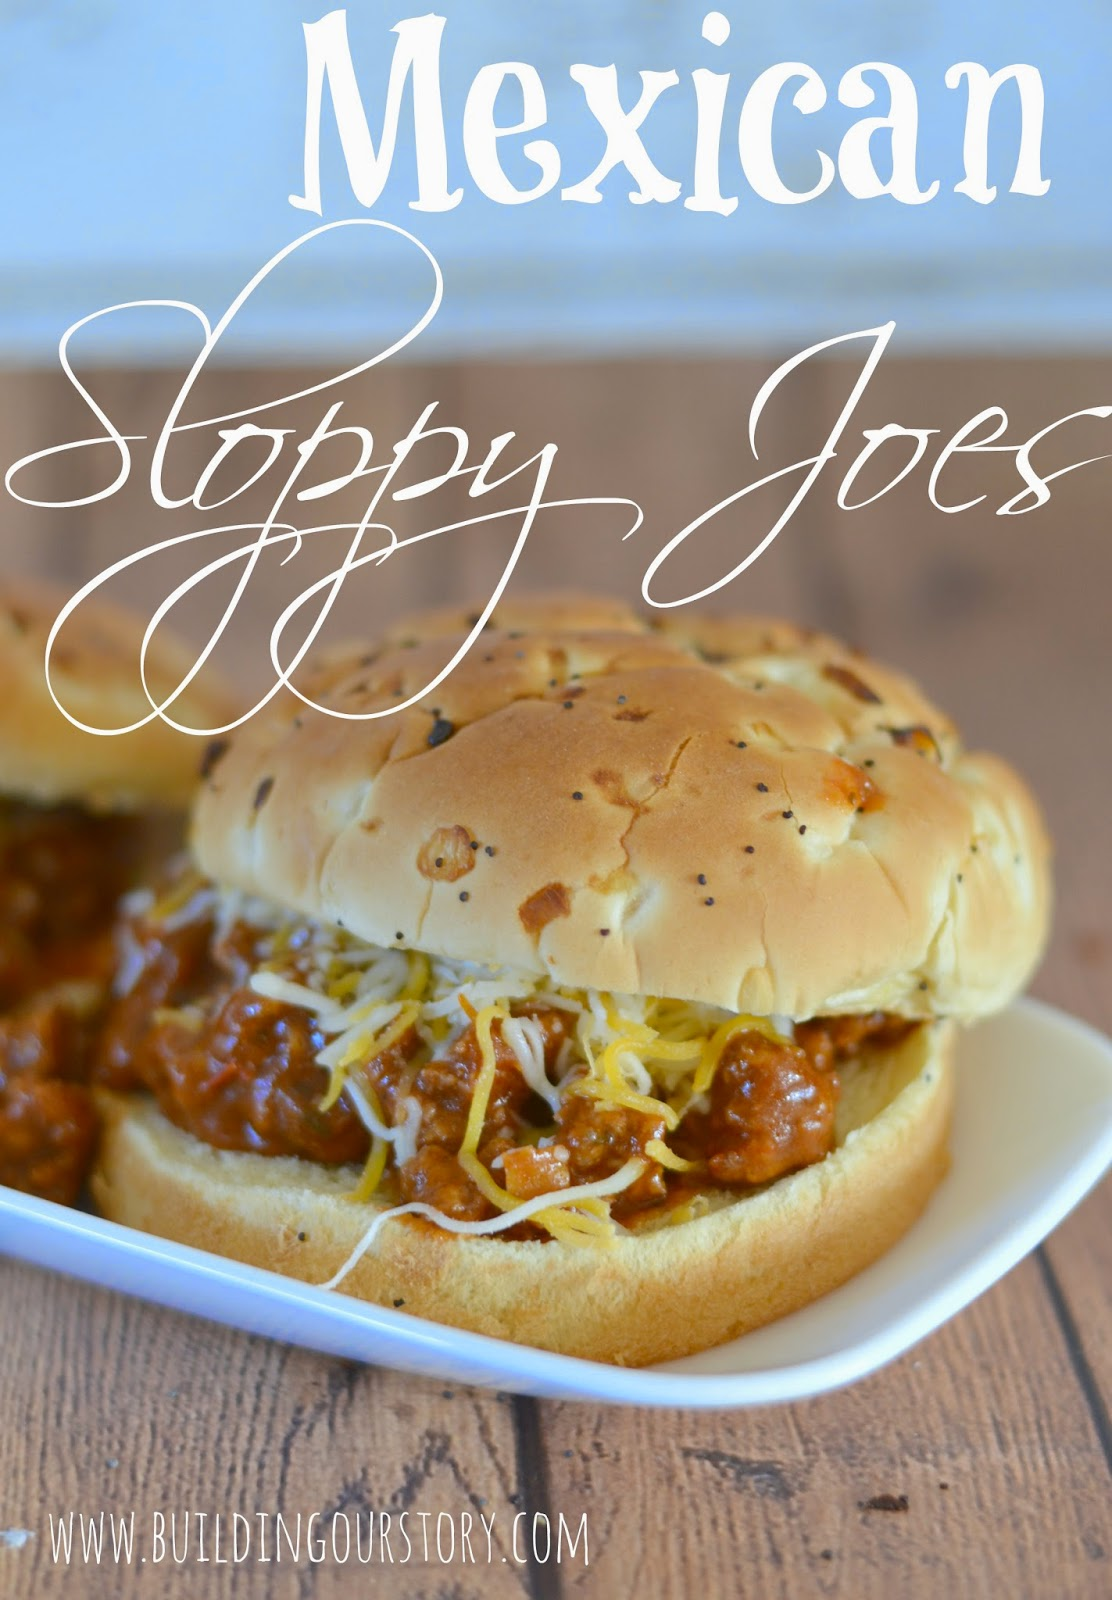 Soups, recipes, casseroles, meals, dinner, preparation, quick, simple meals, dinnertime, Campbell's, Walmart coupon, Meatball Stroganoff, stroganoff recipe, Mexican Sloppy Joes, sloppy joe recipes